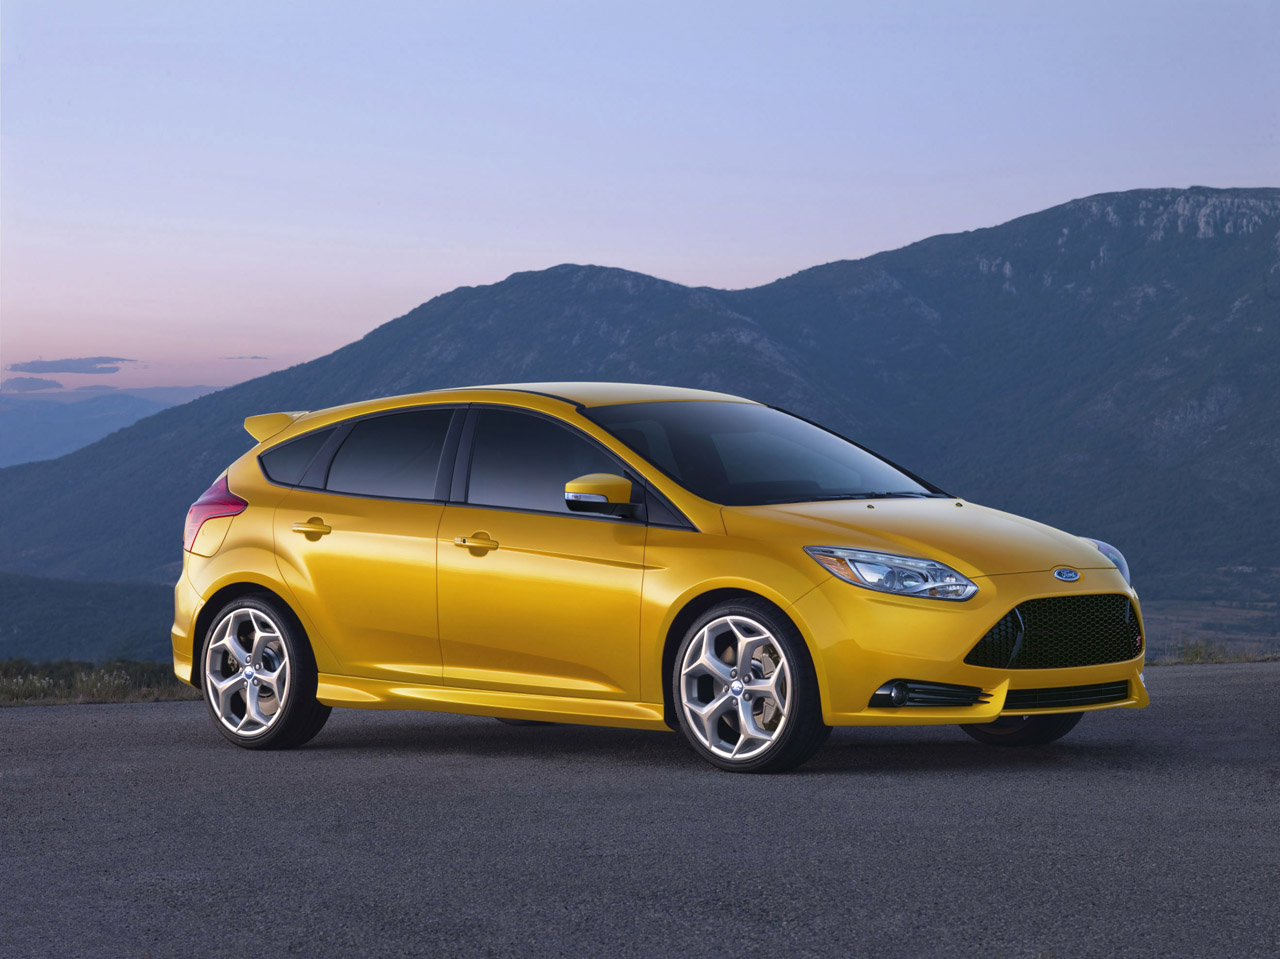 2013 ford focus st gets 23 mpg city 32 mpg highway. Black Bedroom Furniture Sets. Home Design Ideas